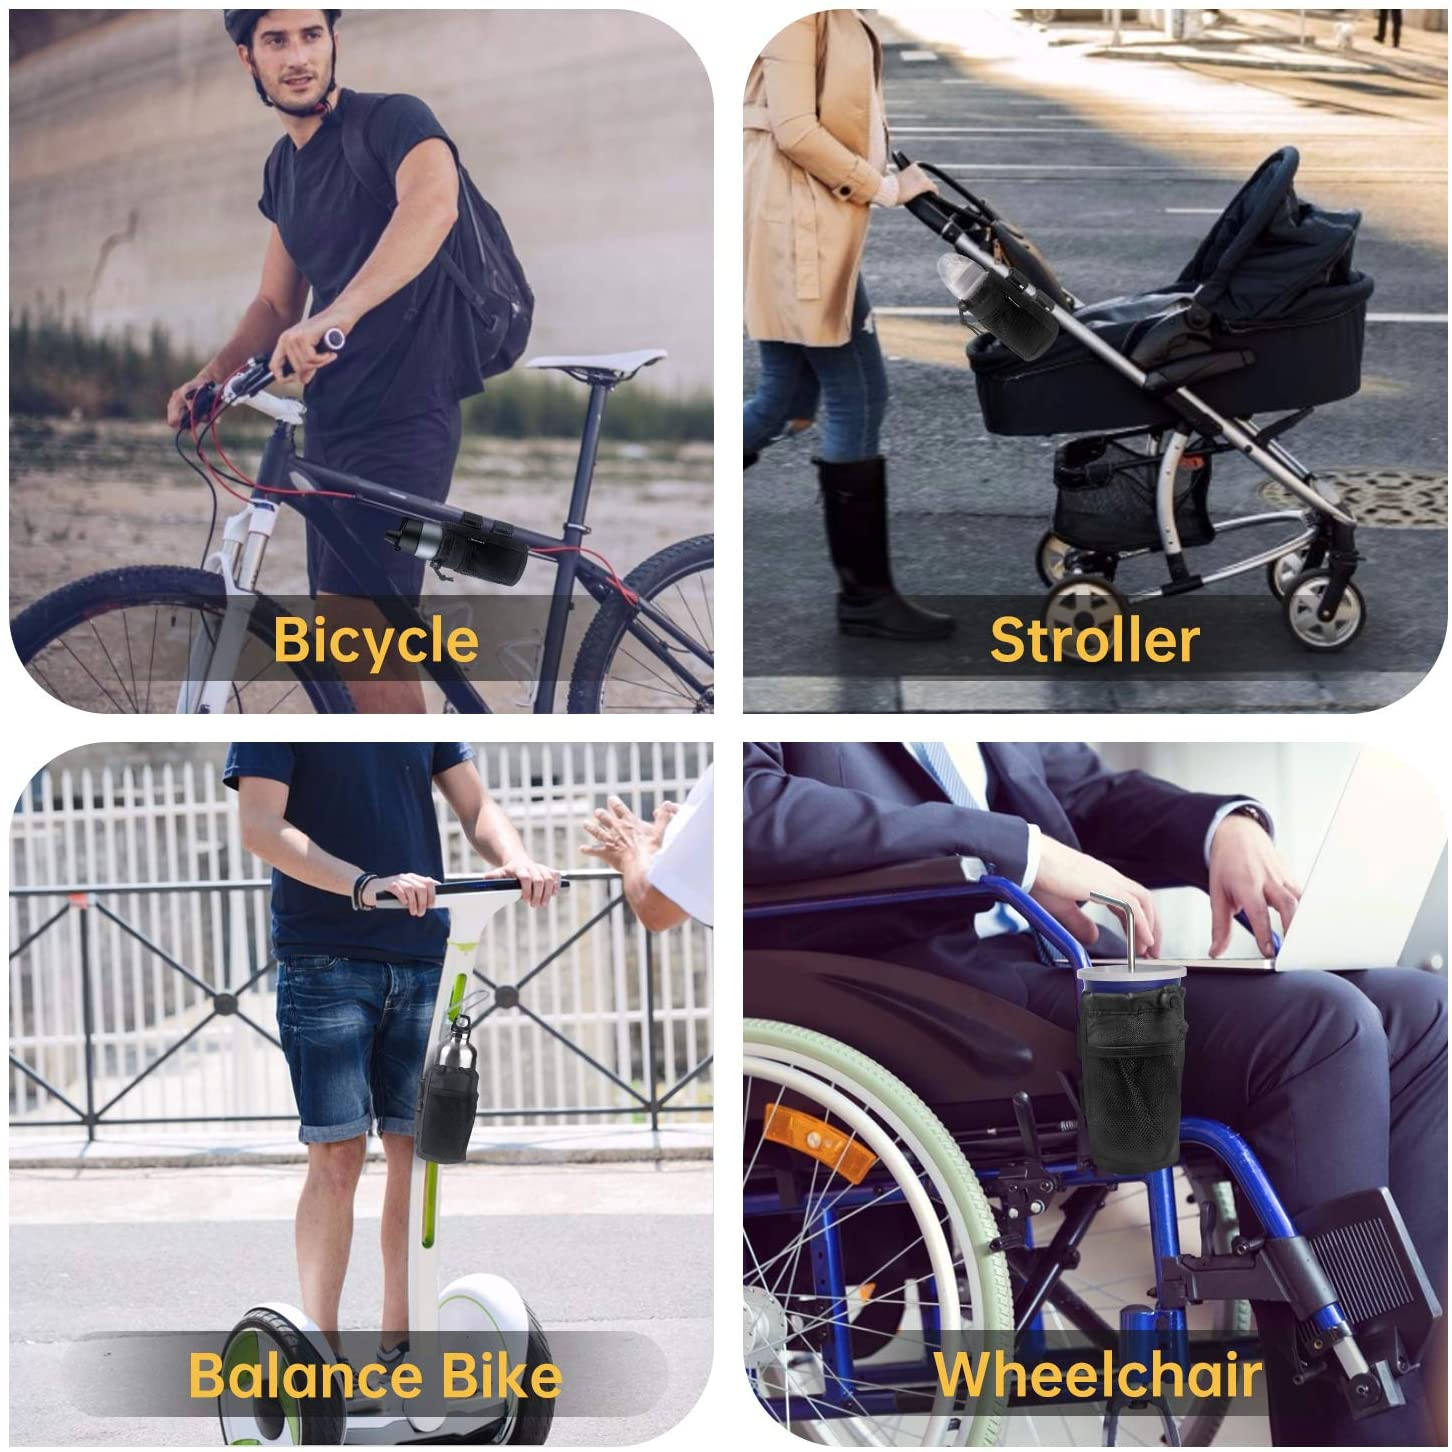 Scooter Boat; Drink Holder Accessories with Net Pocket and Cord Lock FHV 2-Pack Cup Holder for Bike MTB Motorcycle Stroller and Wheelchair; Universal Cup Holders for UTV//ATV Car